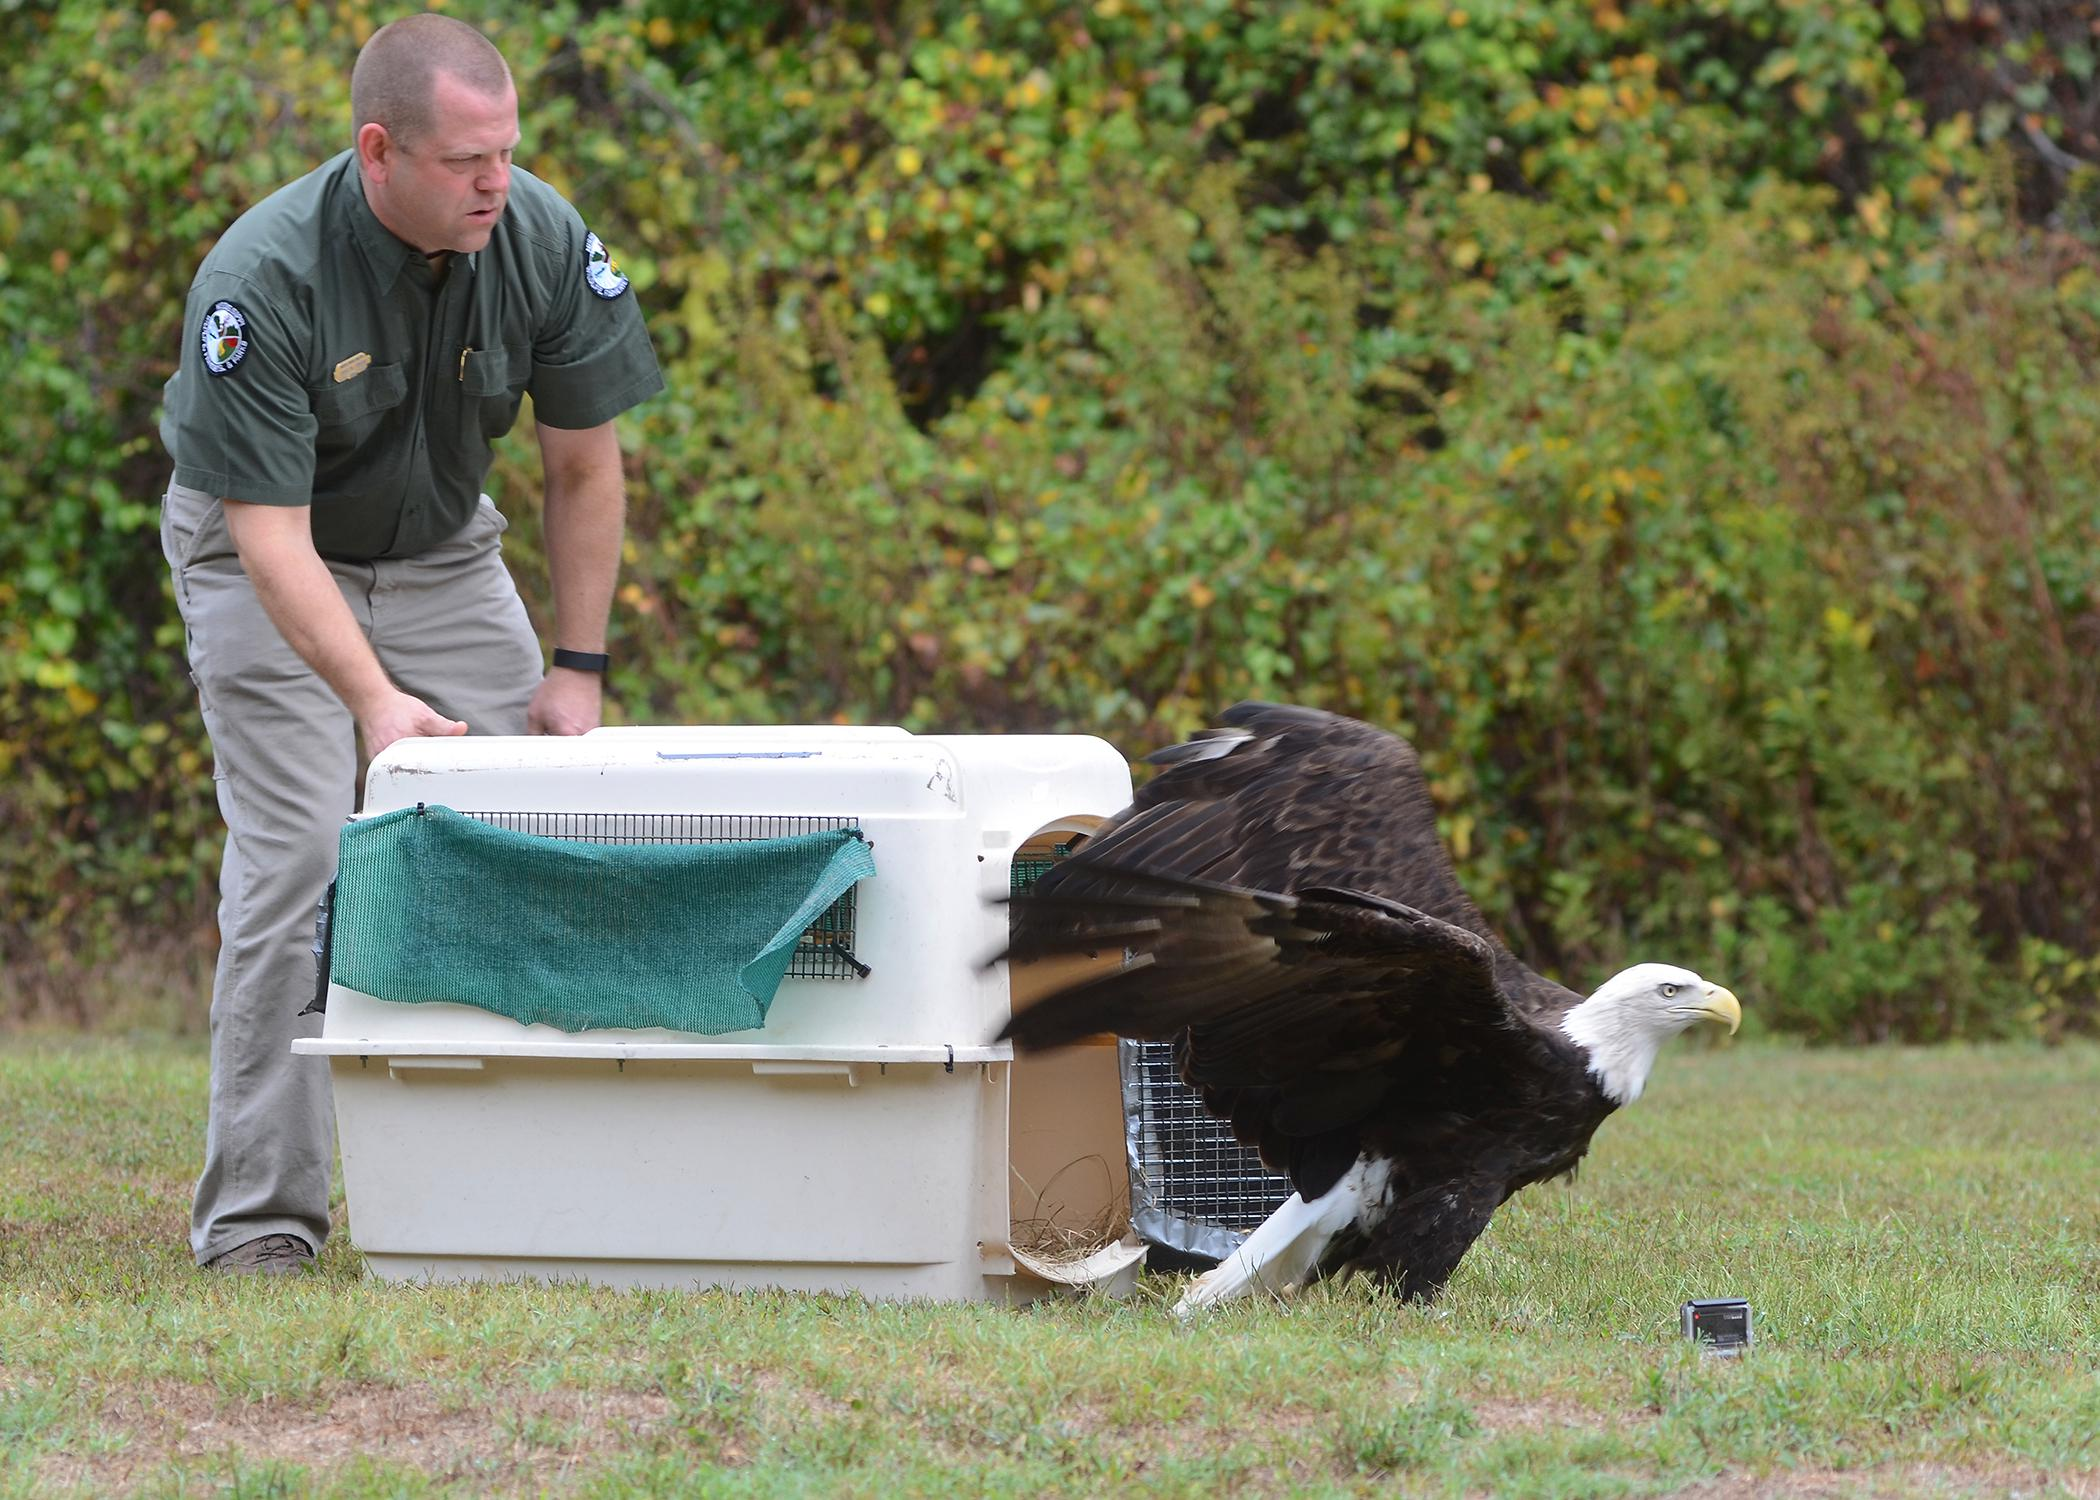 Representatives of the Mississippi Department of Wildlife, Fisheries and Parks are the best contacts when someone discovers a sick or injured wild animal. Their goal is to treat and re-release wild animals, as Chad Dacus, wildlife bureau director, is shown doing for this rehabilitated bald eagle at the Barnett Reservoir near Jackson, Mississippi. (Photo courtesy of Brian Broom)